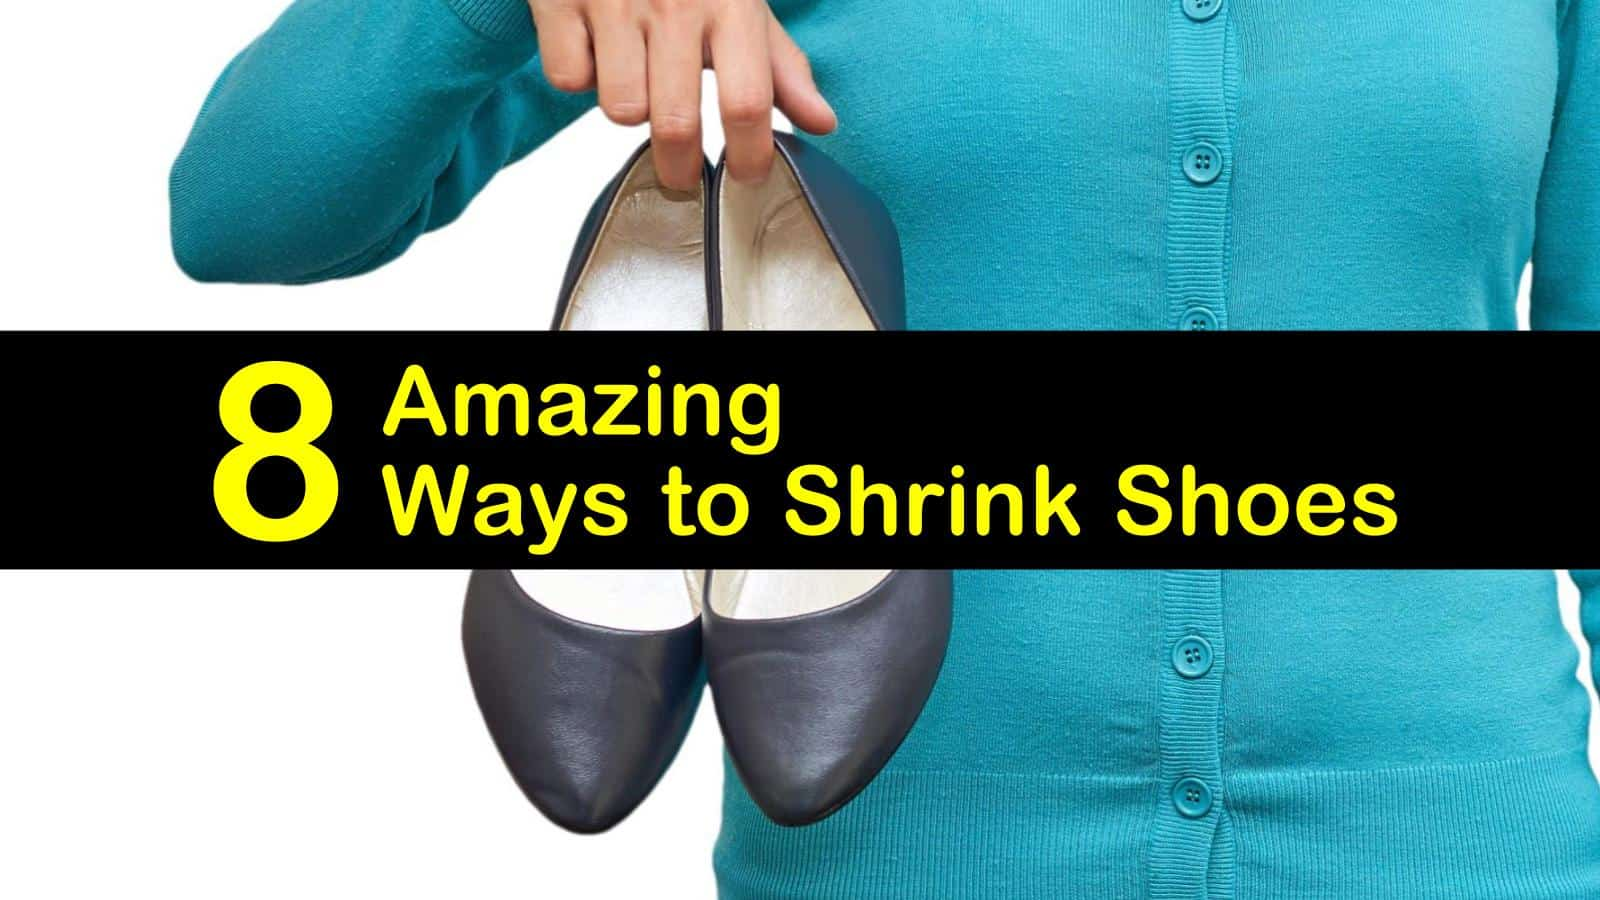 How to Shrink Shoes titleimg1